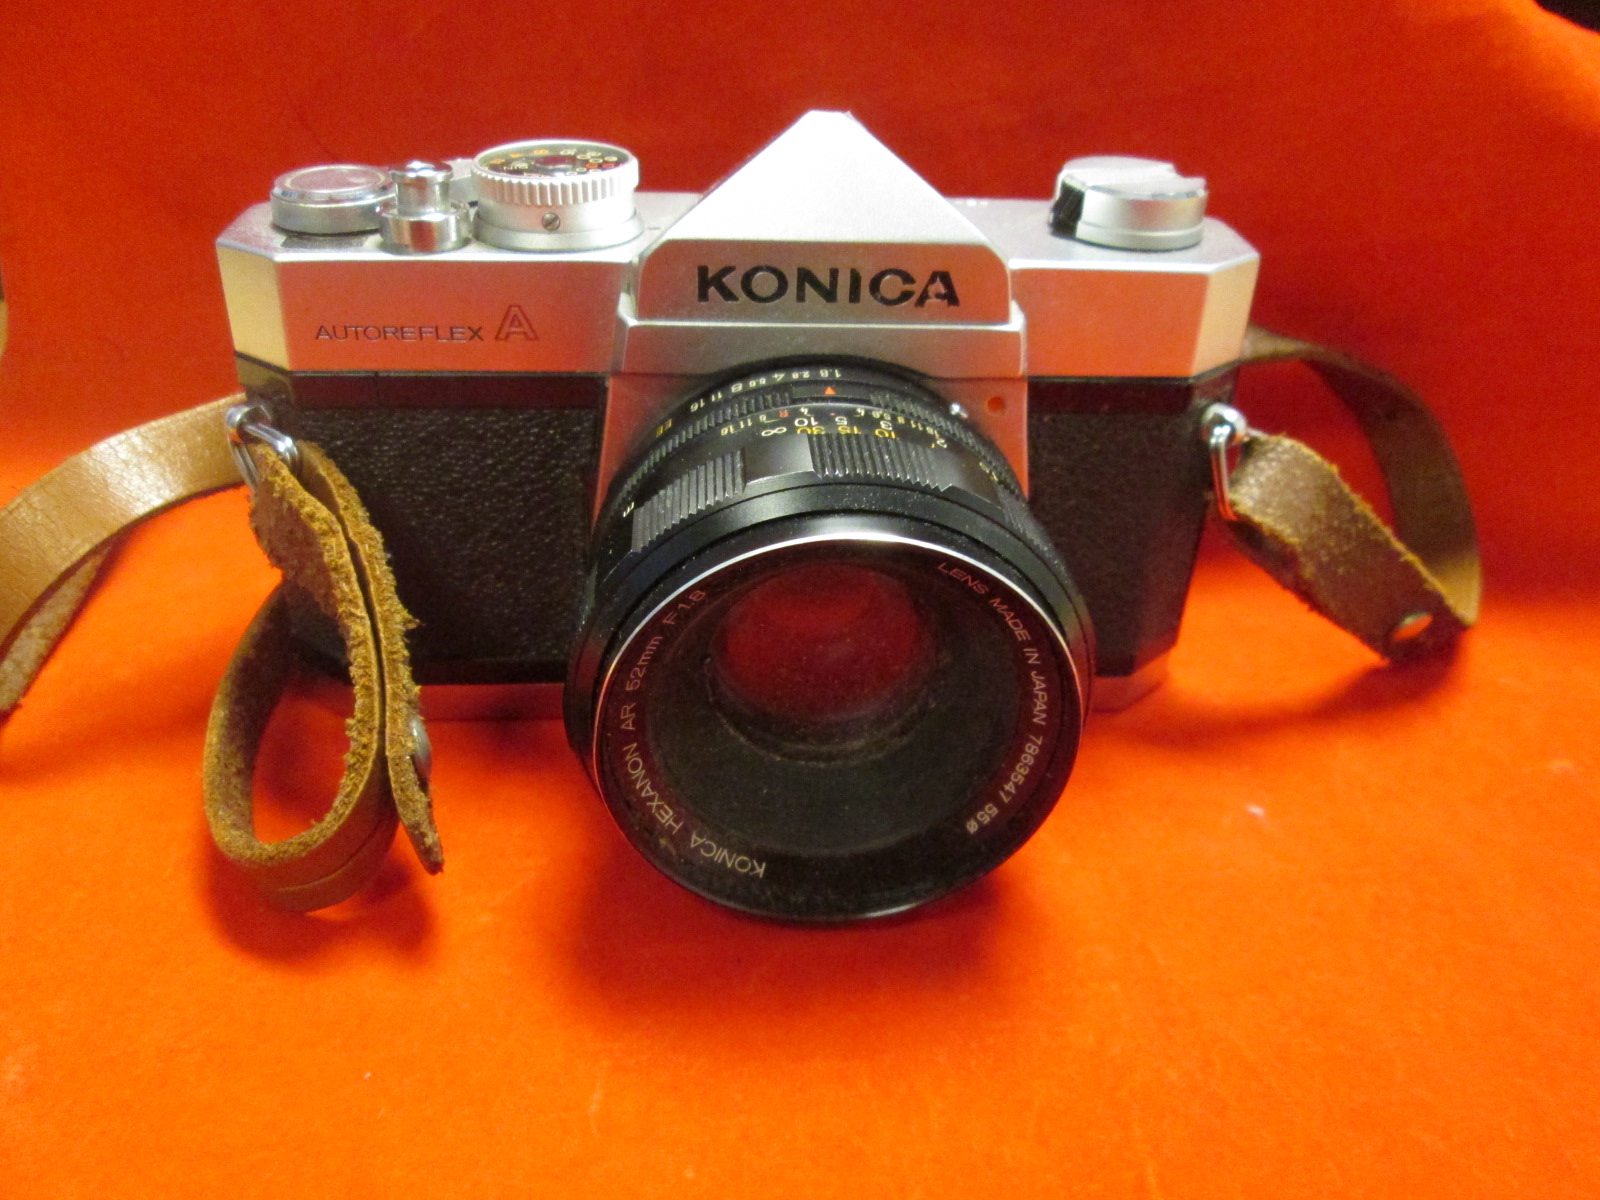 Konica Autoreflex A Film Camera With Konica Hexanon Ar 52 MM Lens